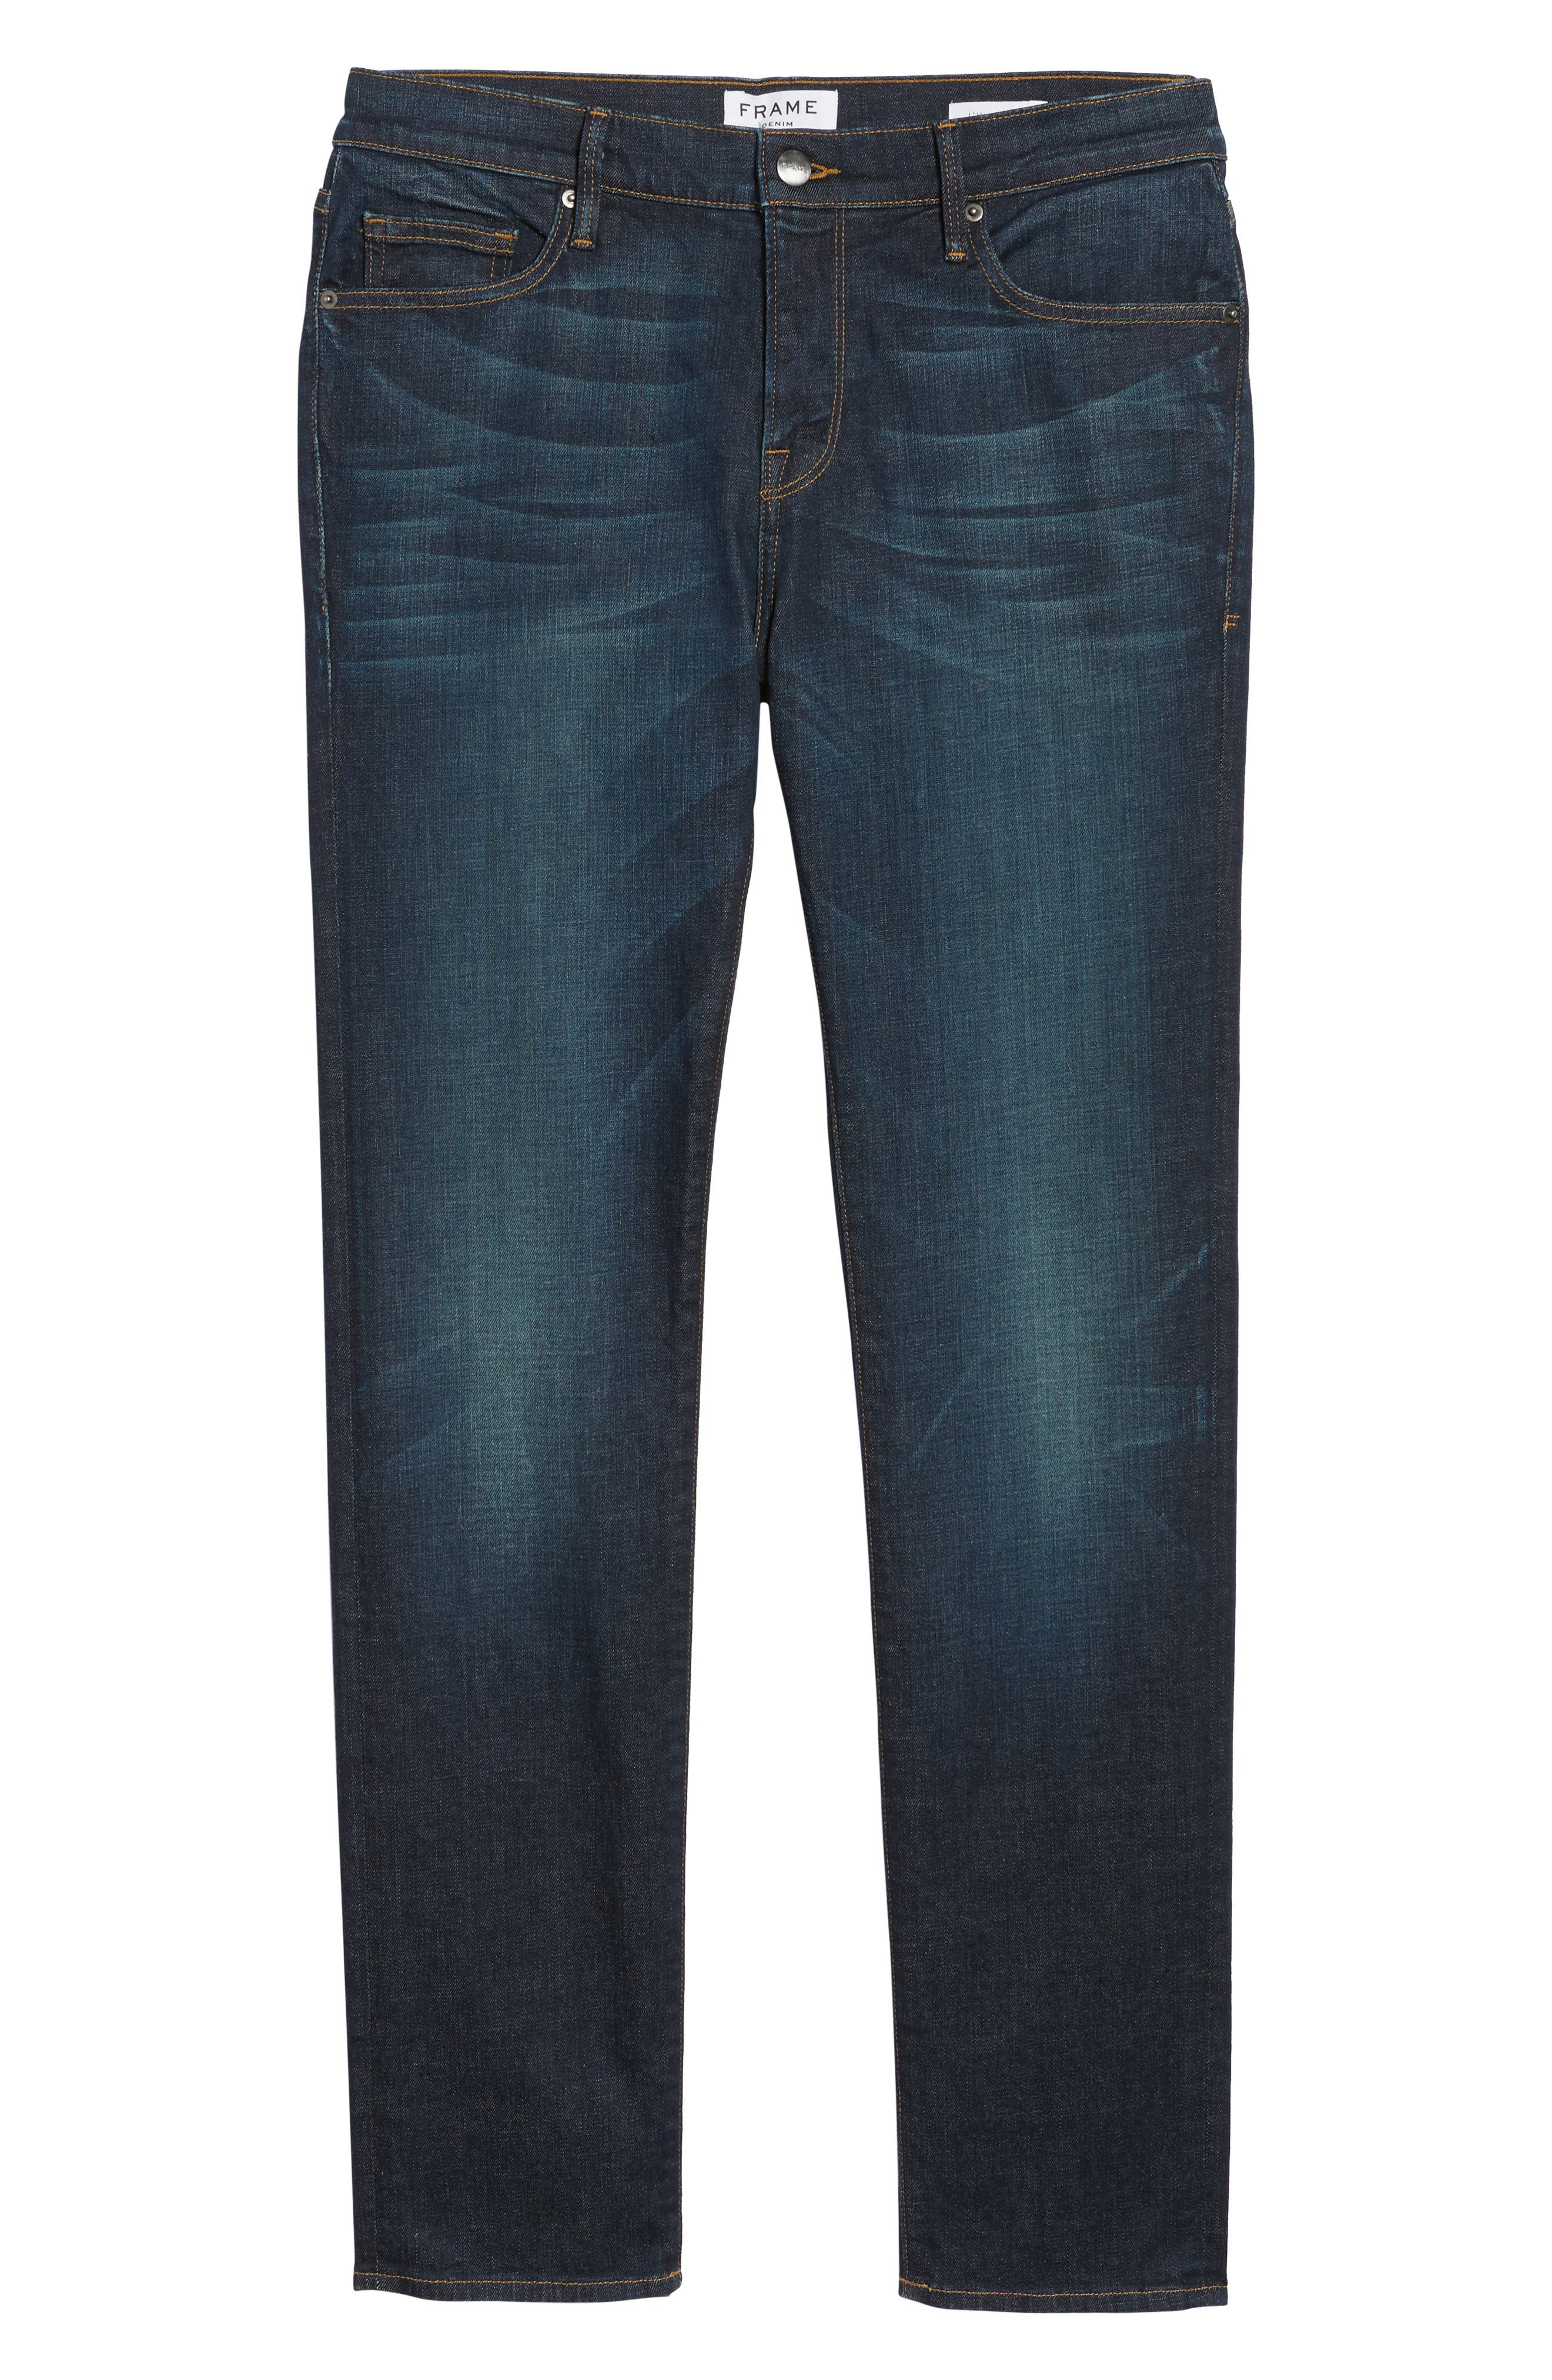 L'Homme Skinny Fit Jeans,                             Alternate thumbnail 7, color,